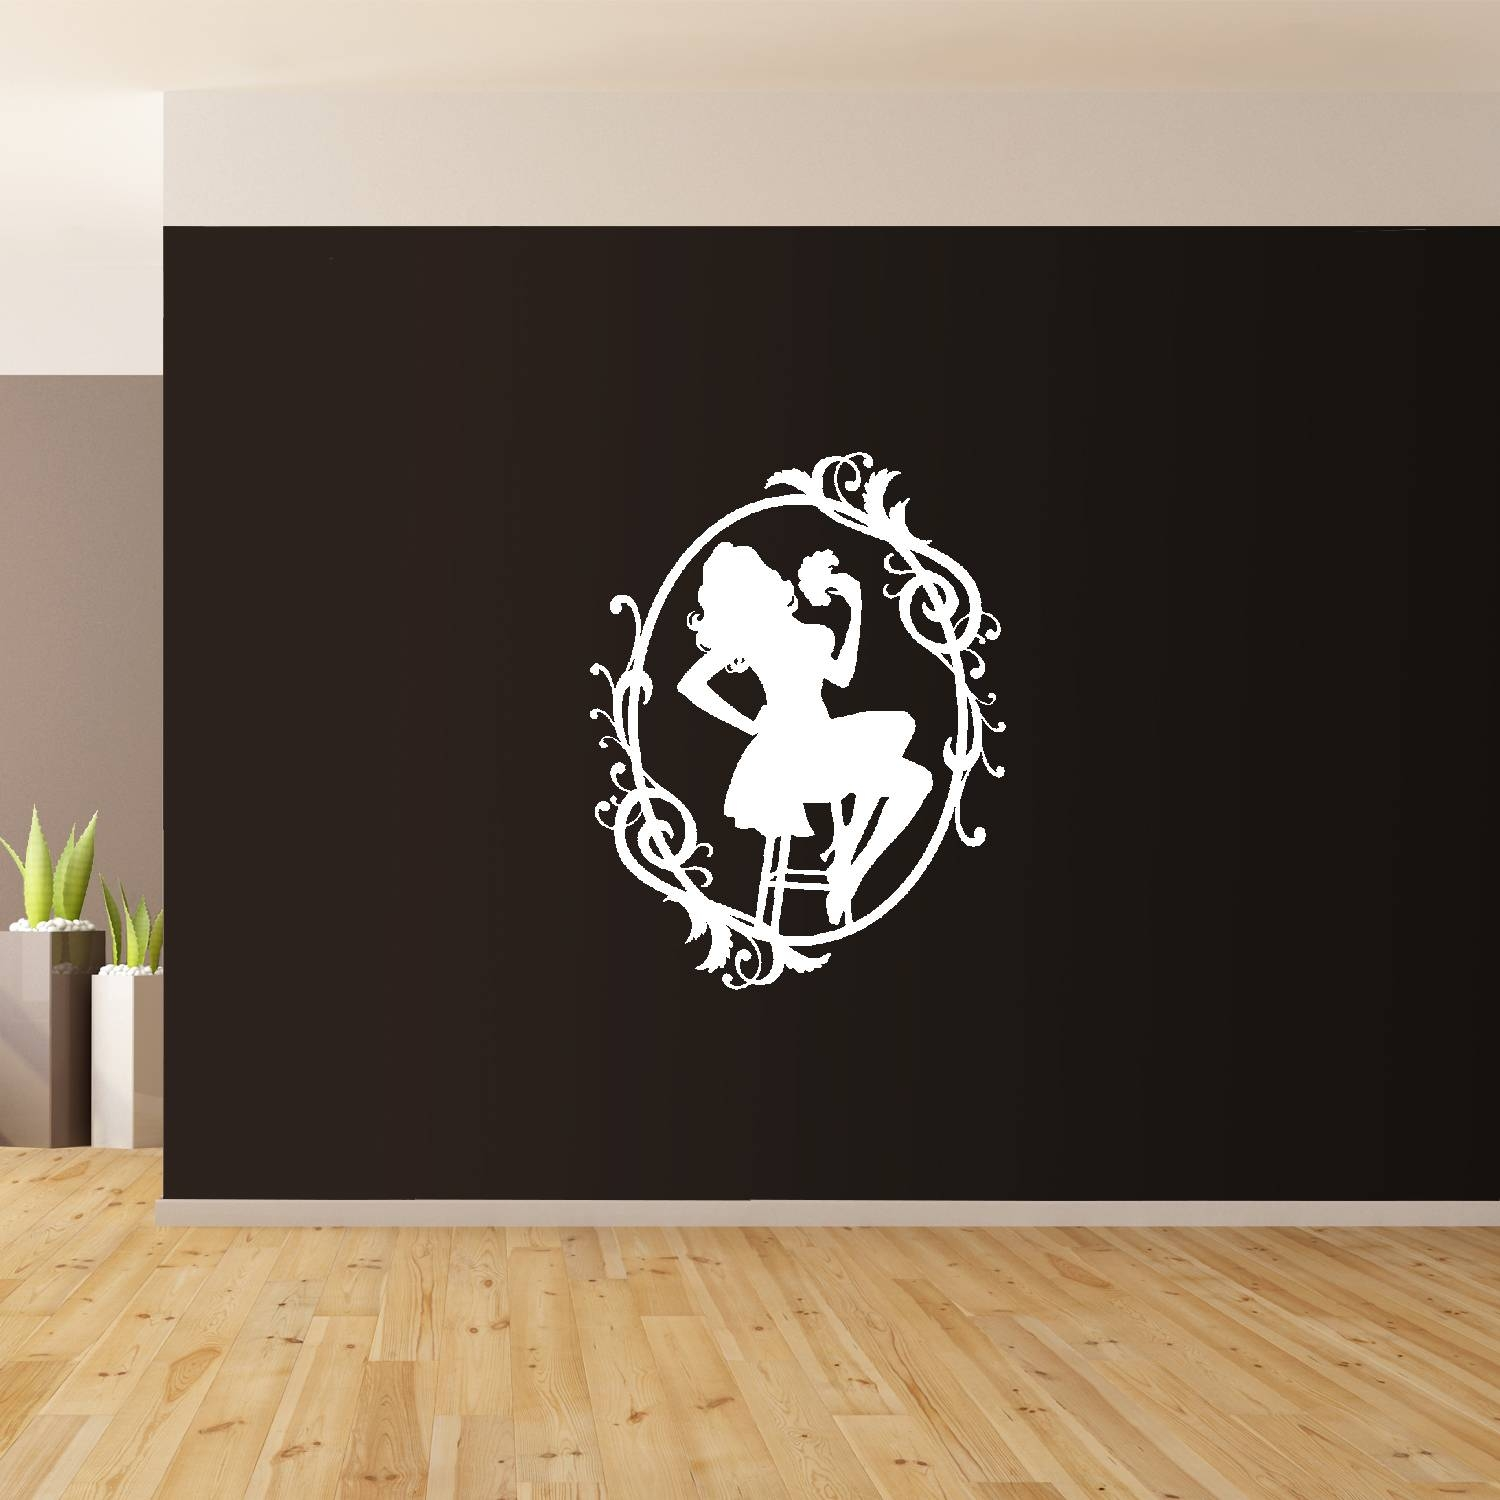 Cameo Wall Art – Wall Murals Ideas Pertaining To Most Current Cameo Wall Art (View 3 of 20)